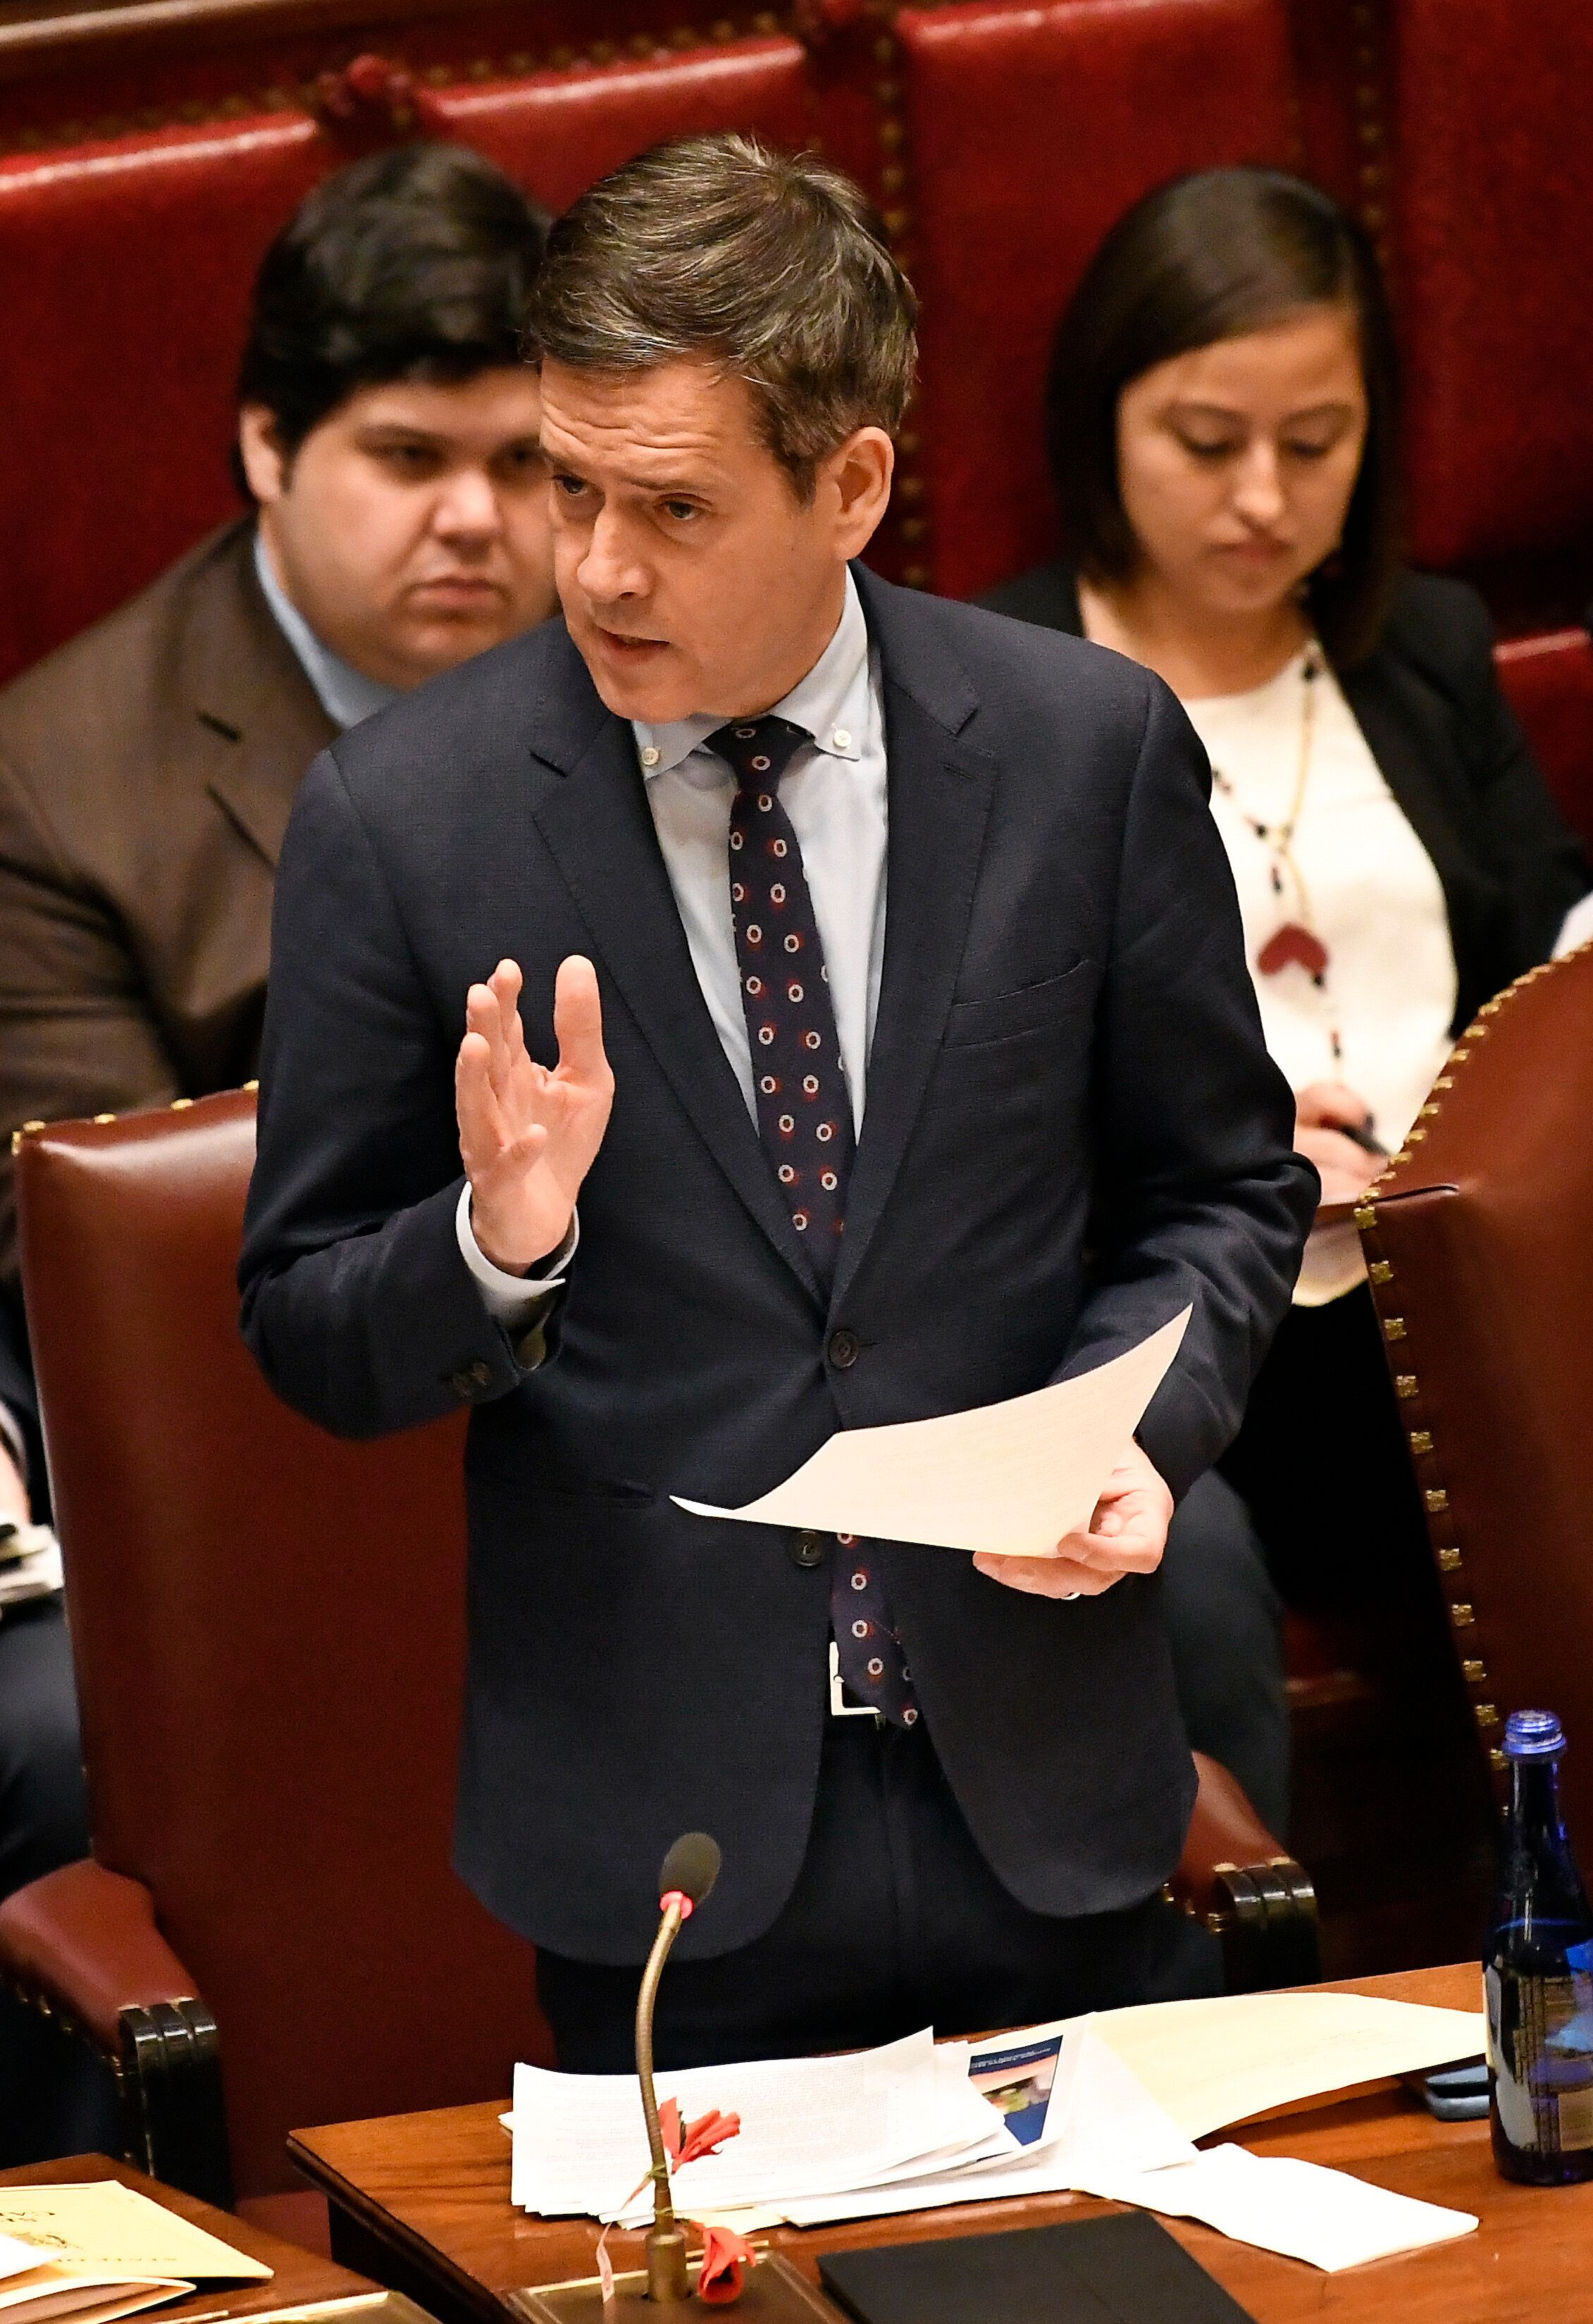 New York Sen. Brad Hoylman, D-New York, explains his vote in the affirmative for the Child Victims Act in the Sanate Chamber at the state Capitol on Monday, Jan. 28, 2019, in Albany, N.Y. (AP Photo/Hans Pennink)